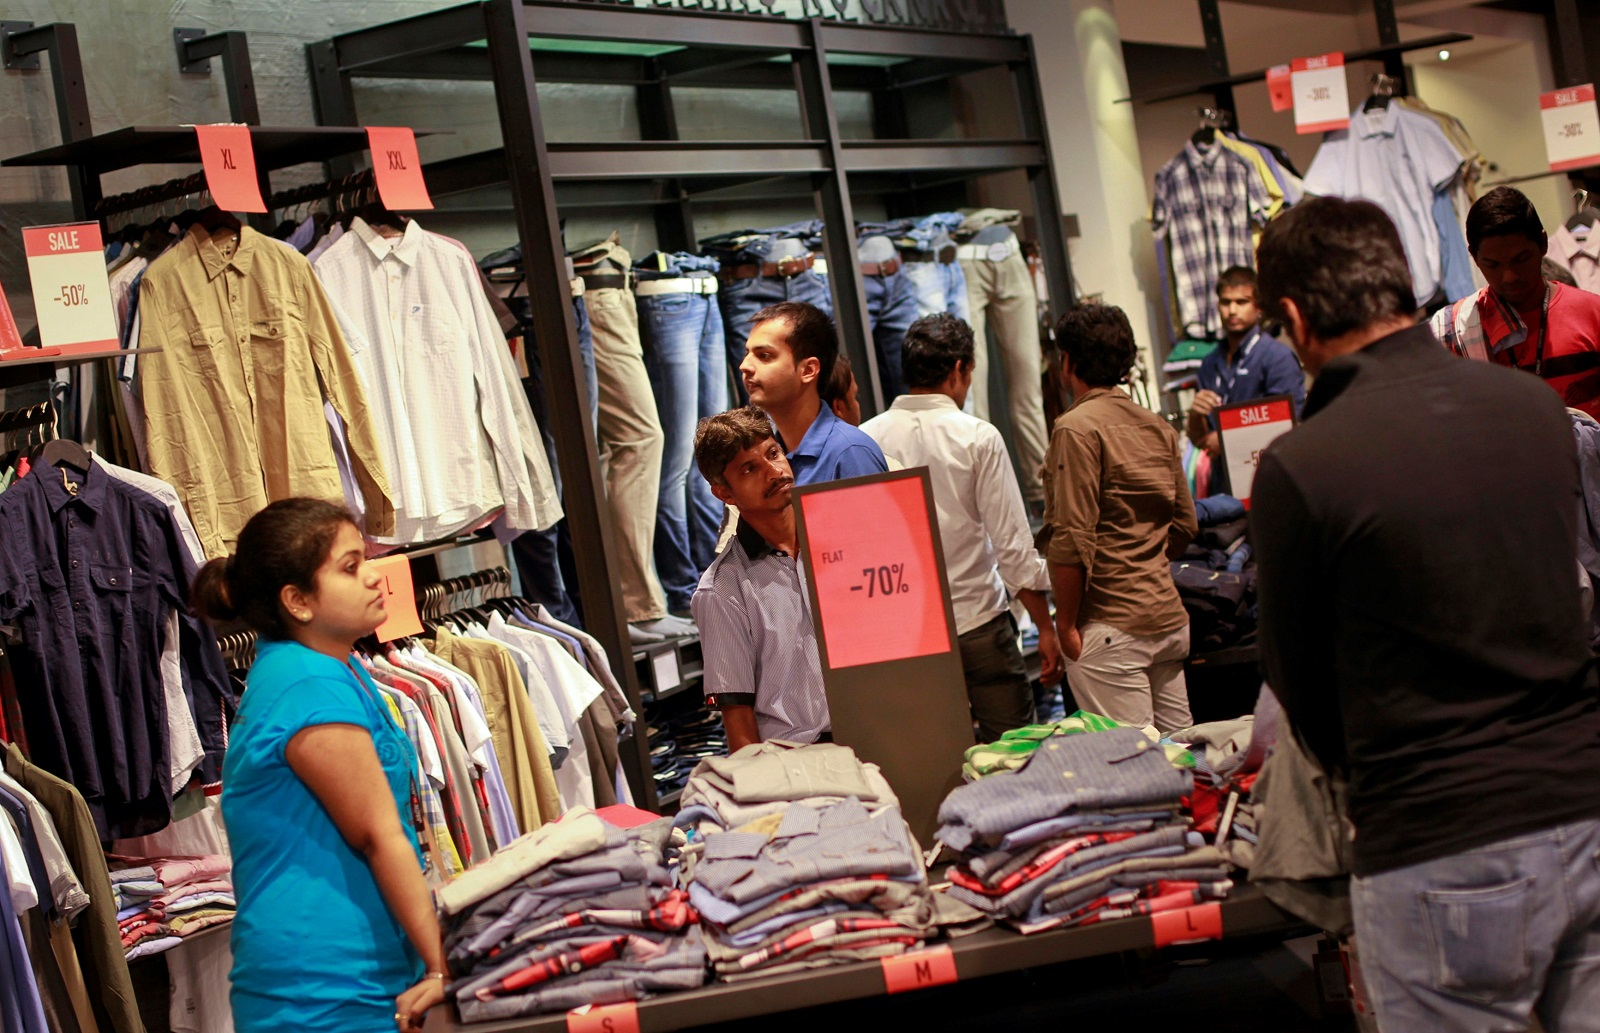 V Bazaar 1 India Family Mart Plan Fewer Fashion Stores In 2020 Quartz India